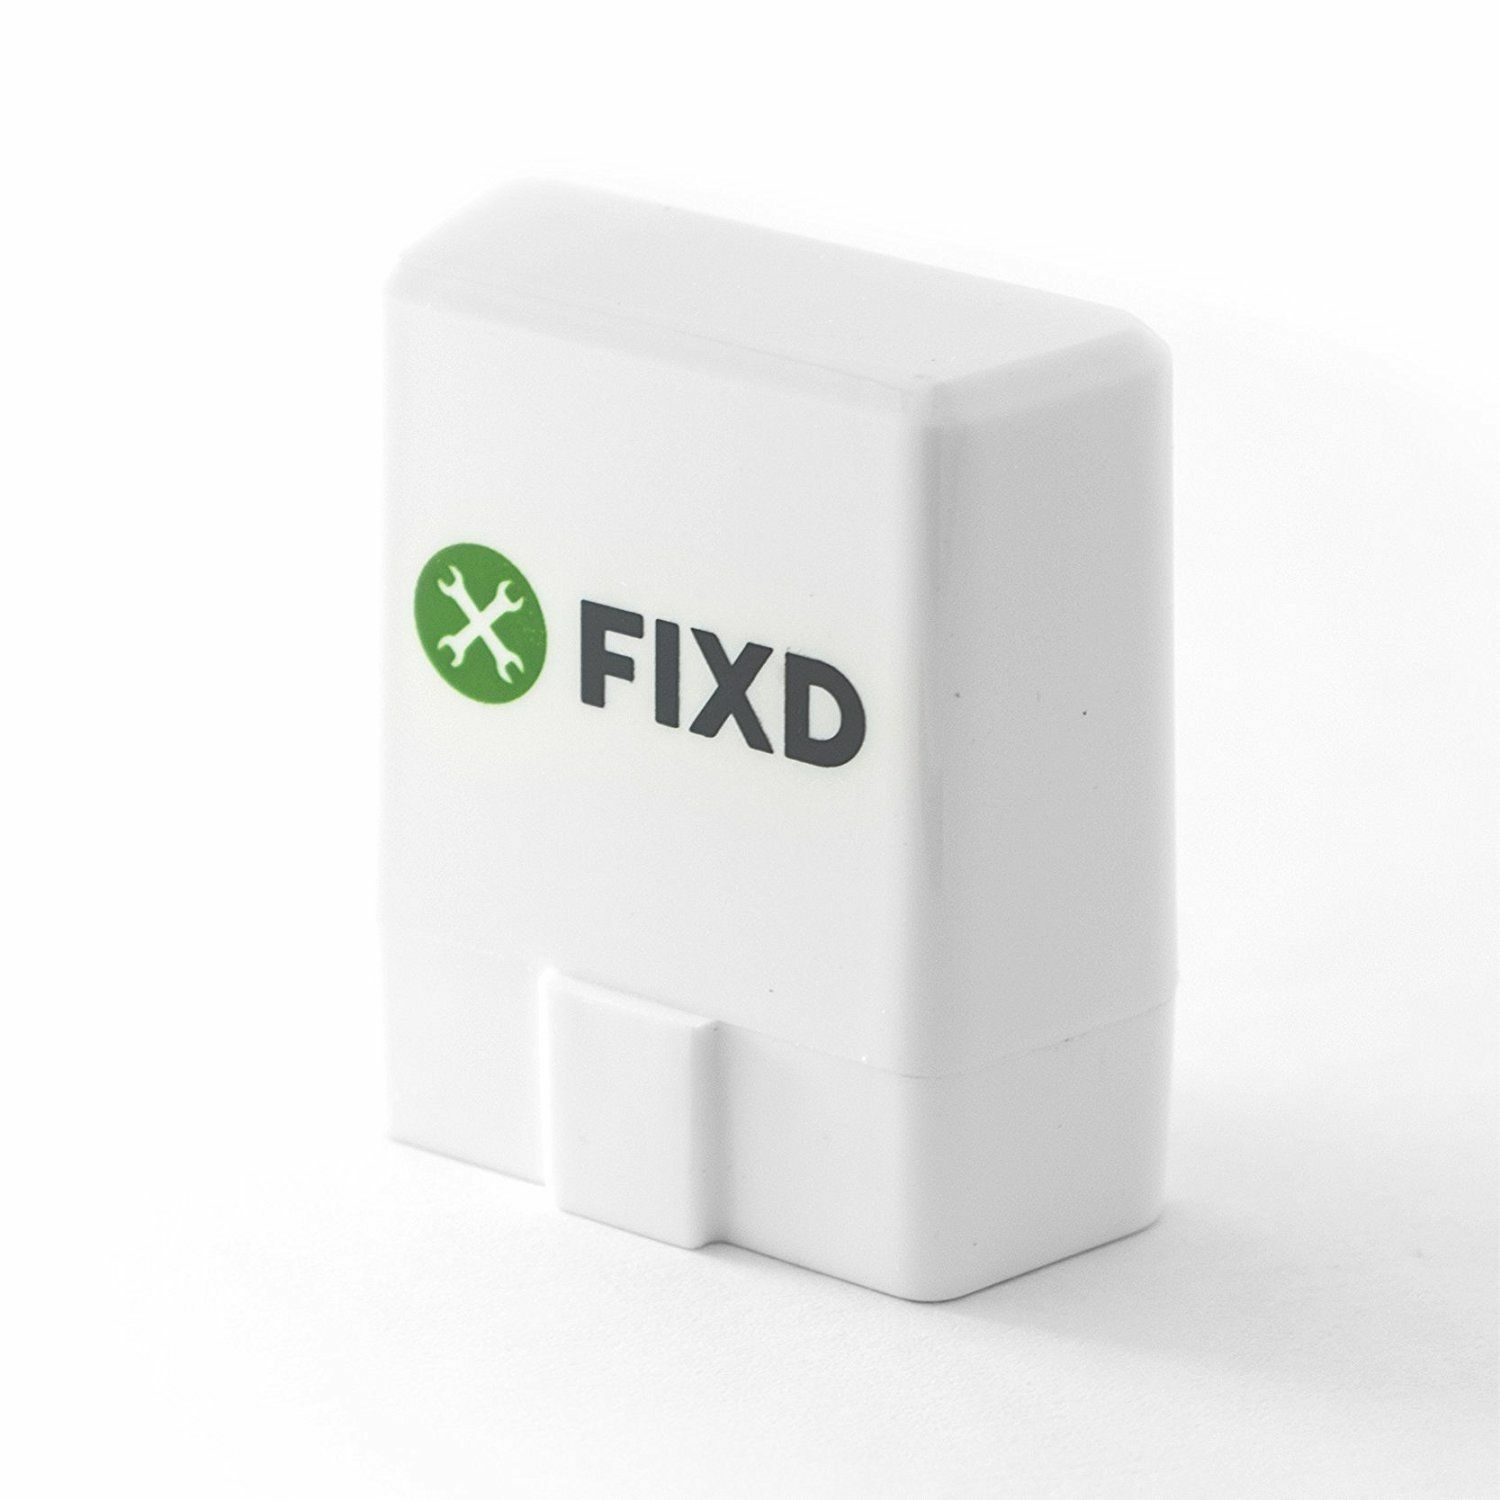 Купить FIXD - FIXD OBD-II ACTIVE CAR HEALTH MONITOR NEW 2ND GENERATION CODE READER ENGINE SCAN